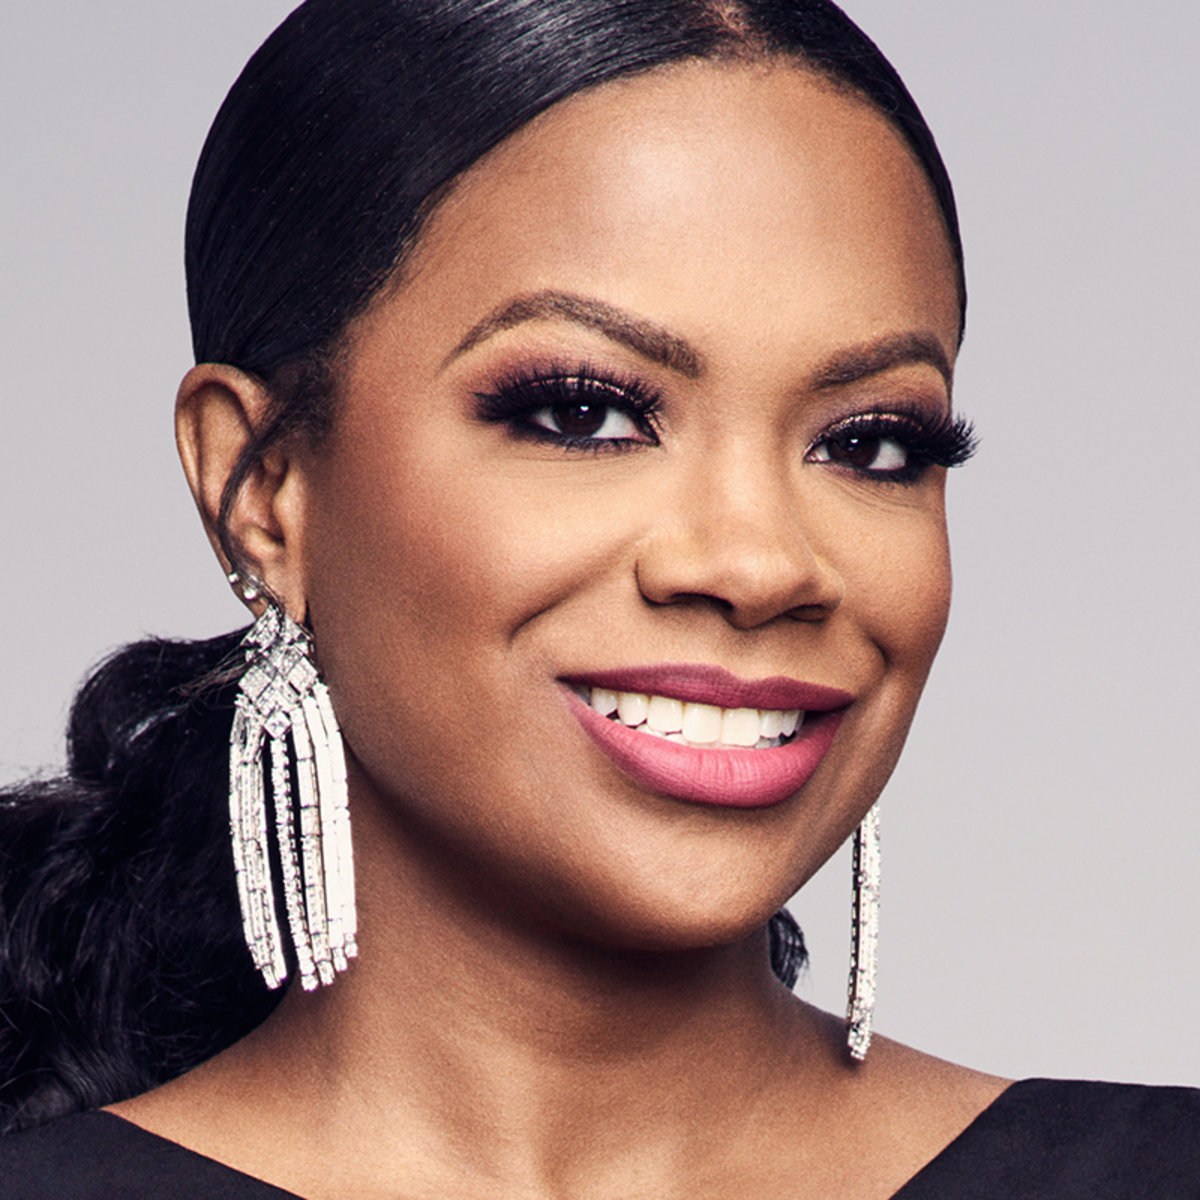 kandi-burruss-breaks-the-internet-with-her-45th-birthday-photo-and-clip